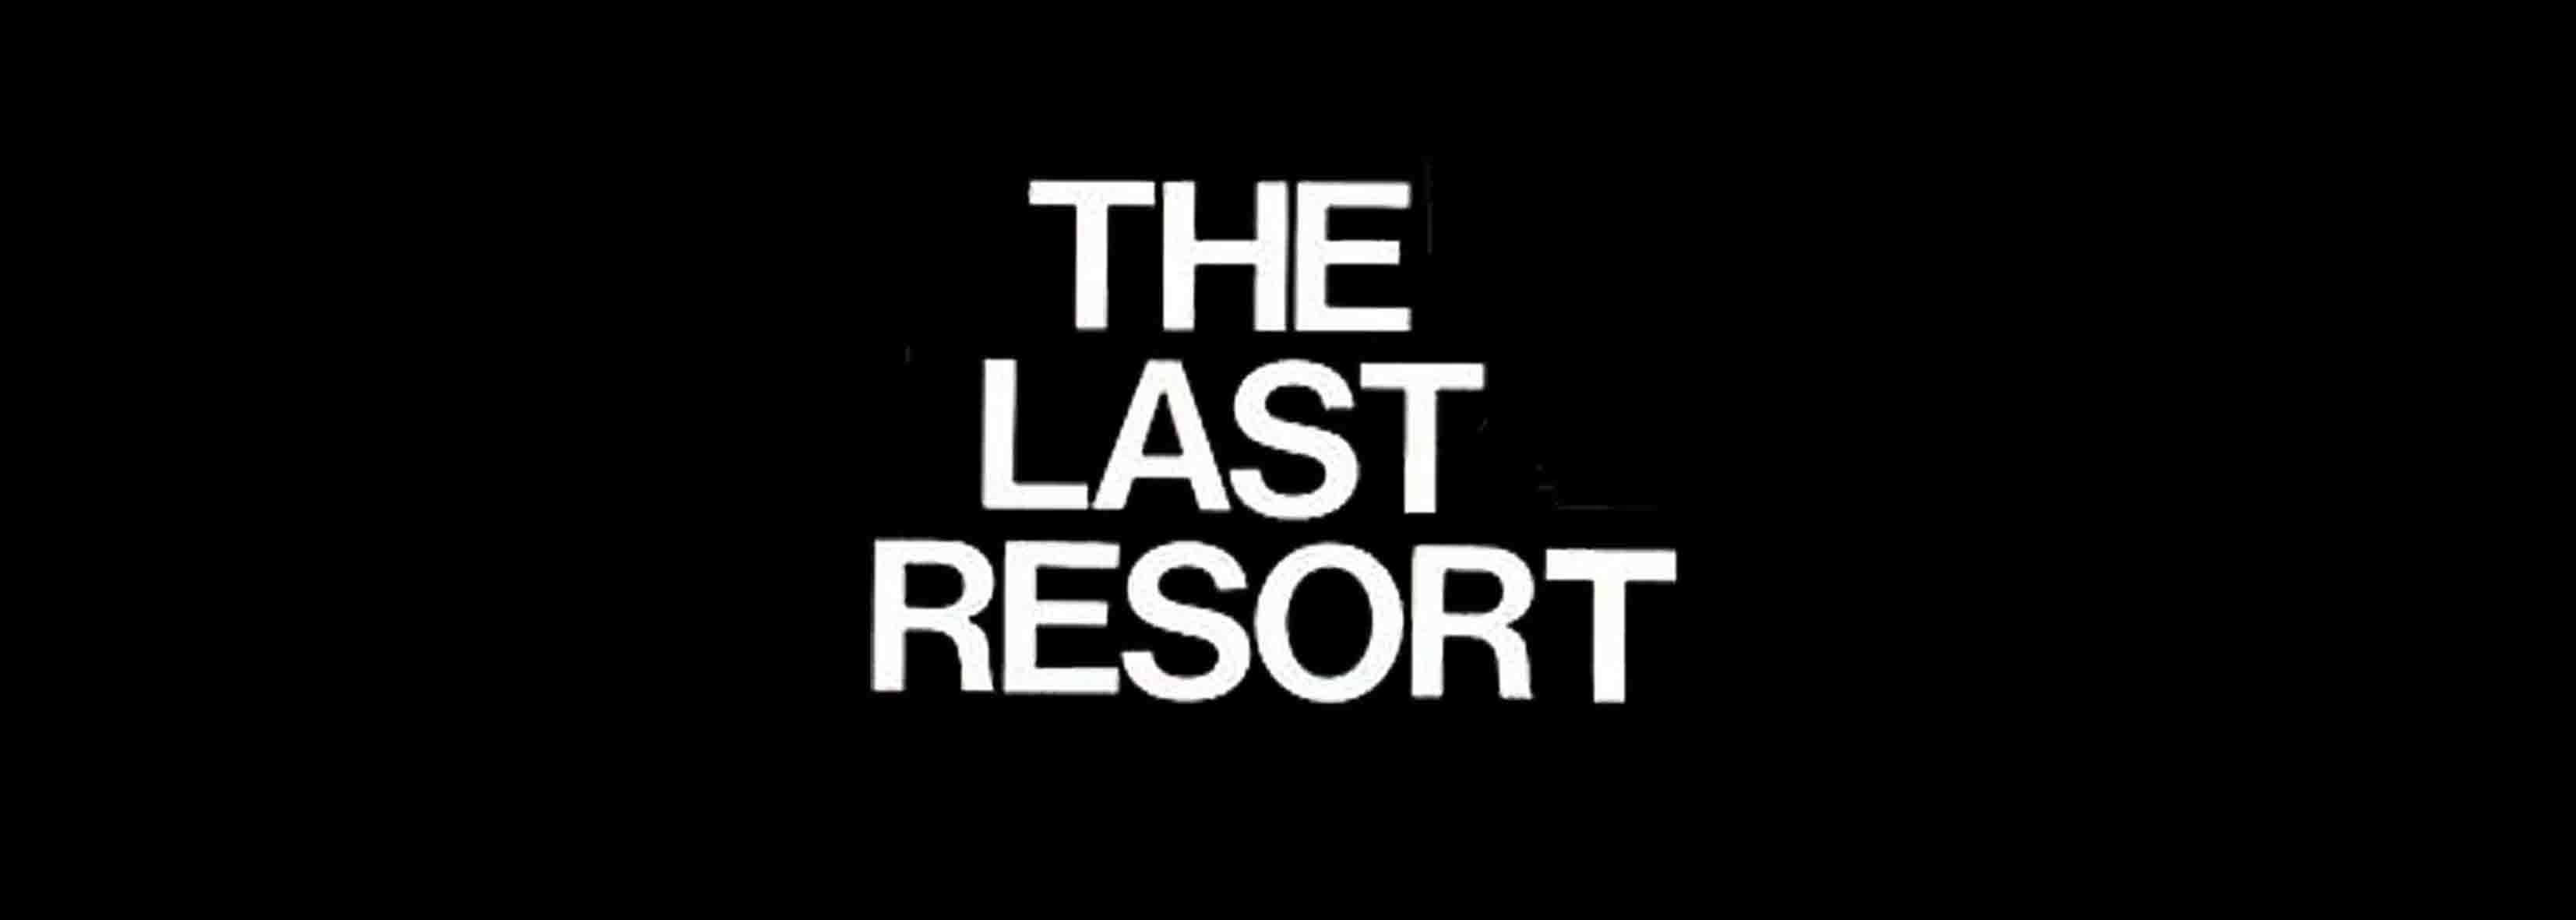 THE LAST RESORT - TOURDATES